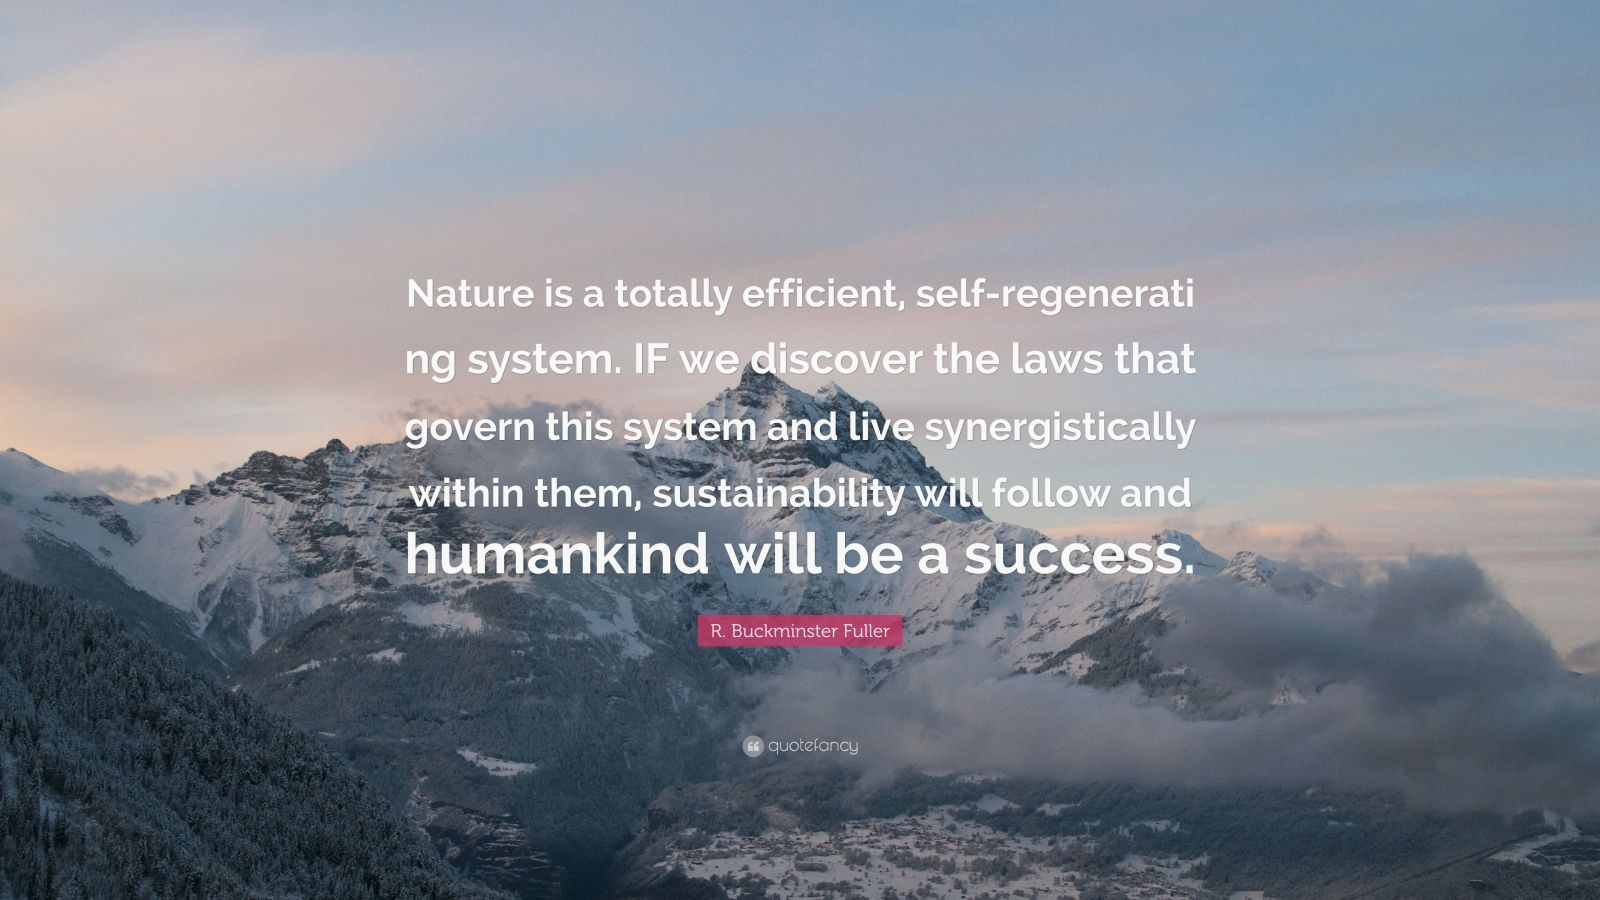 """R. Buckminster Fuller Quote: """"Nature is a totally efficient, self-regenerati ng system. IF we discover the laws that govern this system and live synergistically within them, sustainability will follow and humankind will be a success."""""""